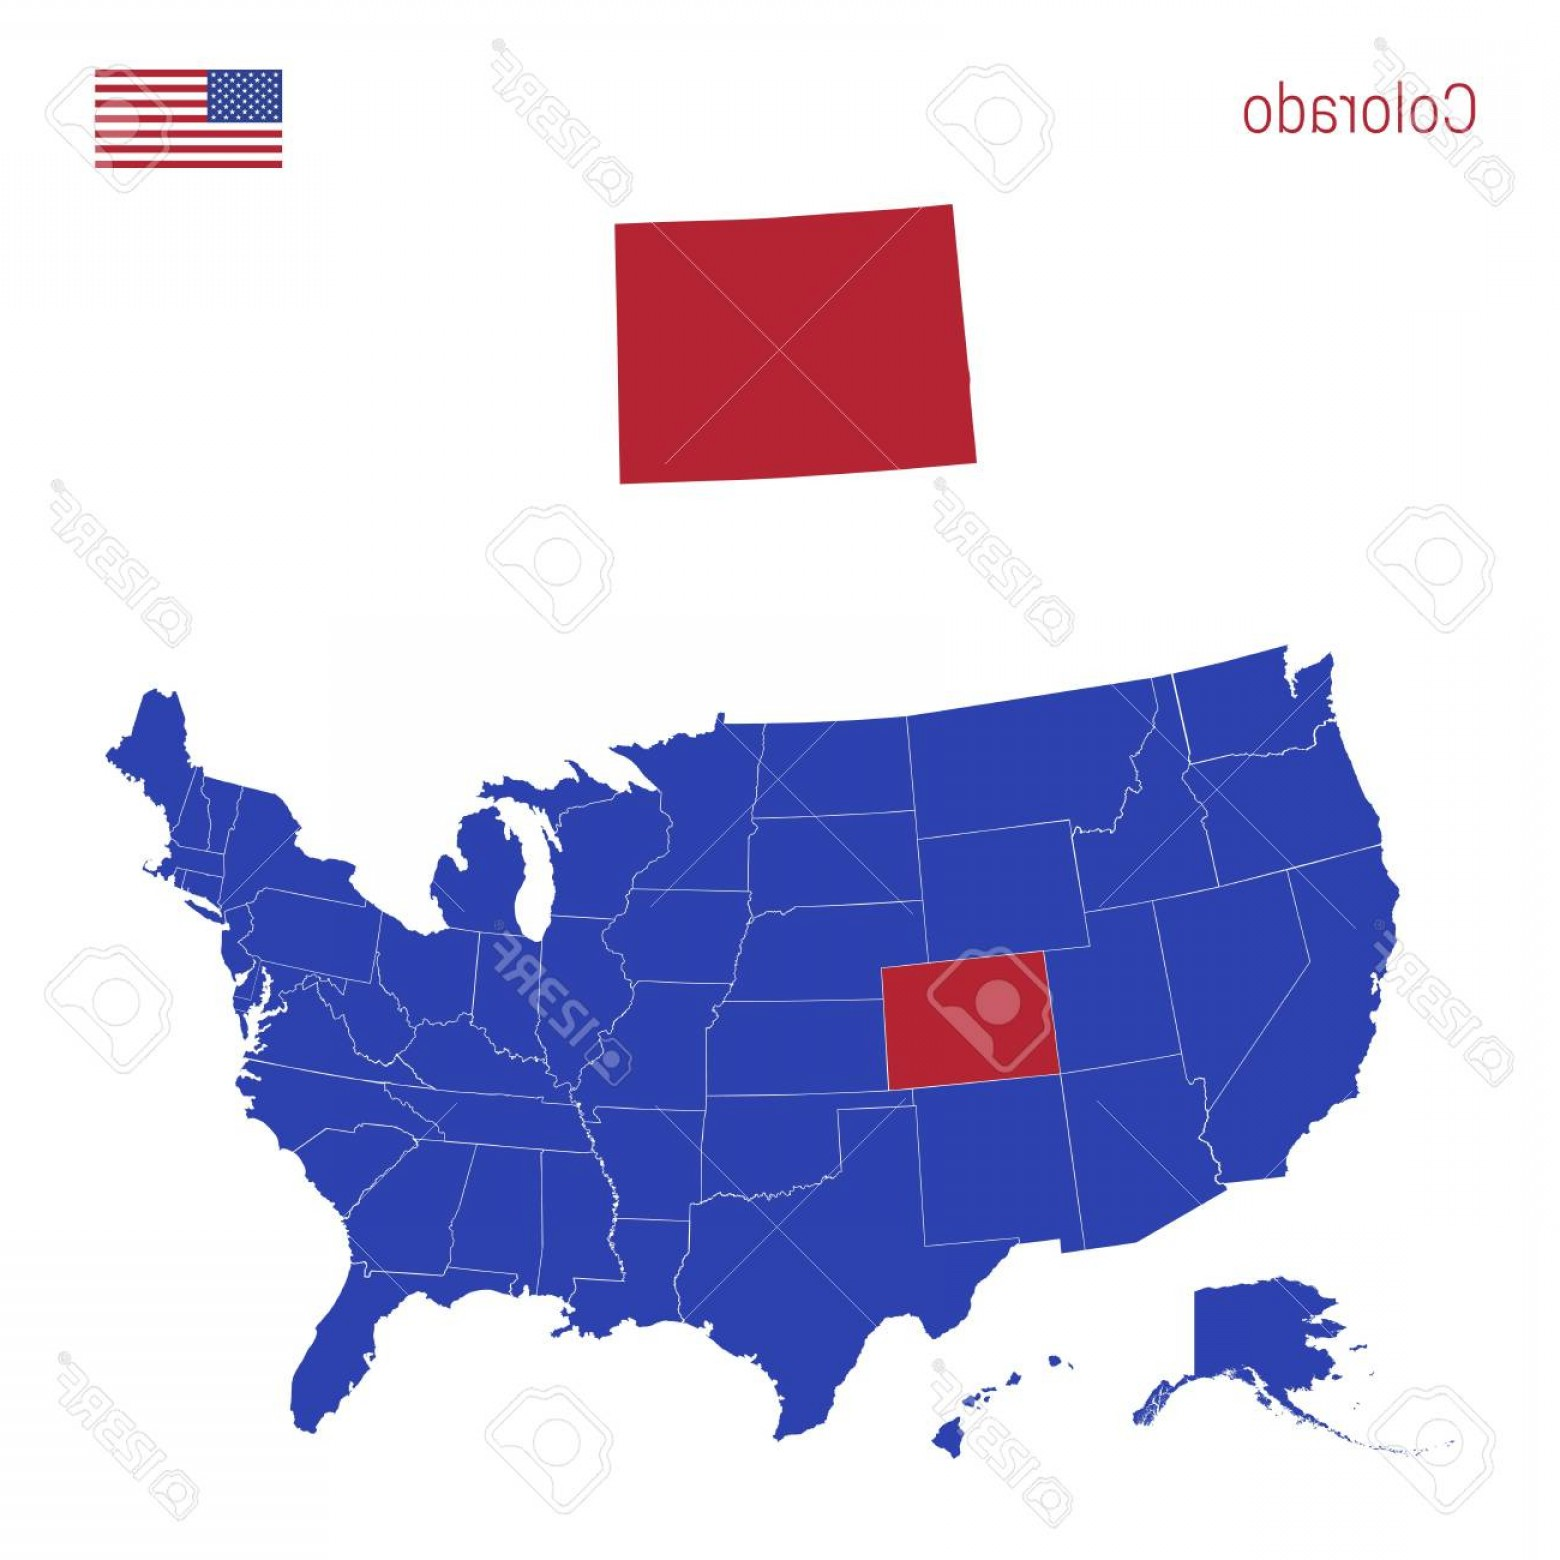 Colorado State Vector Maps: Photostock Vector The State Of Colorado Is Highlighted In Red Blue Vector Map Of The United States Divided Into Separa